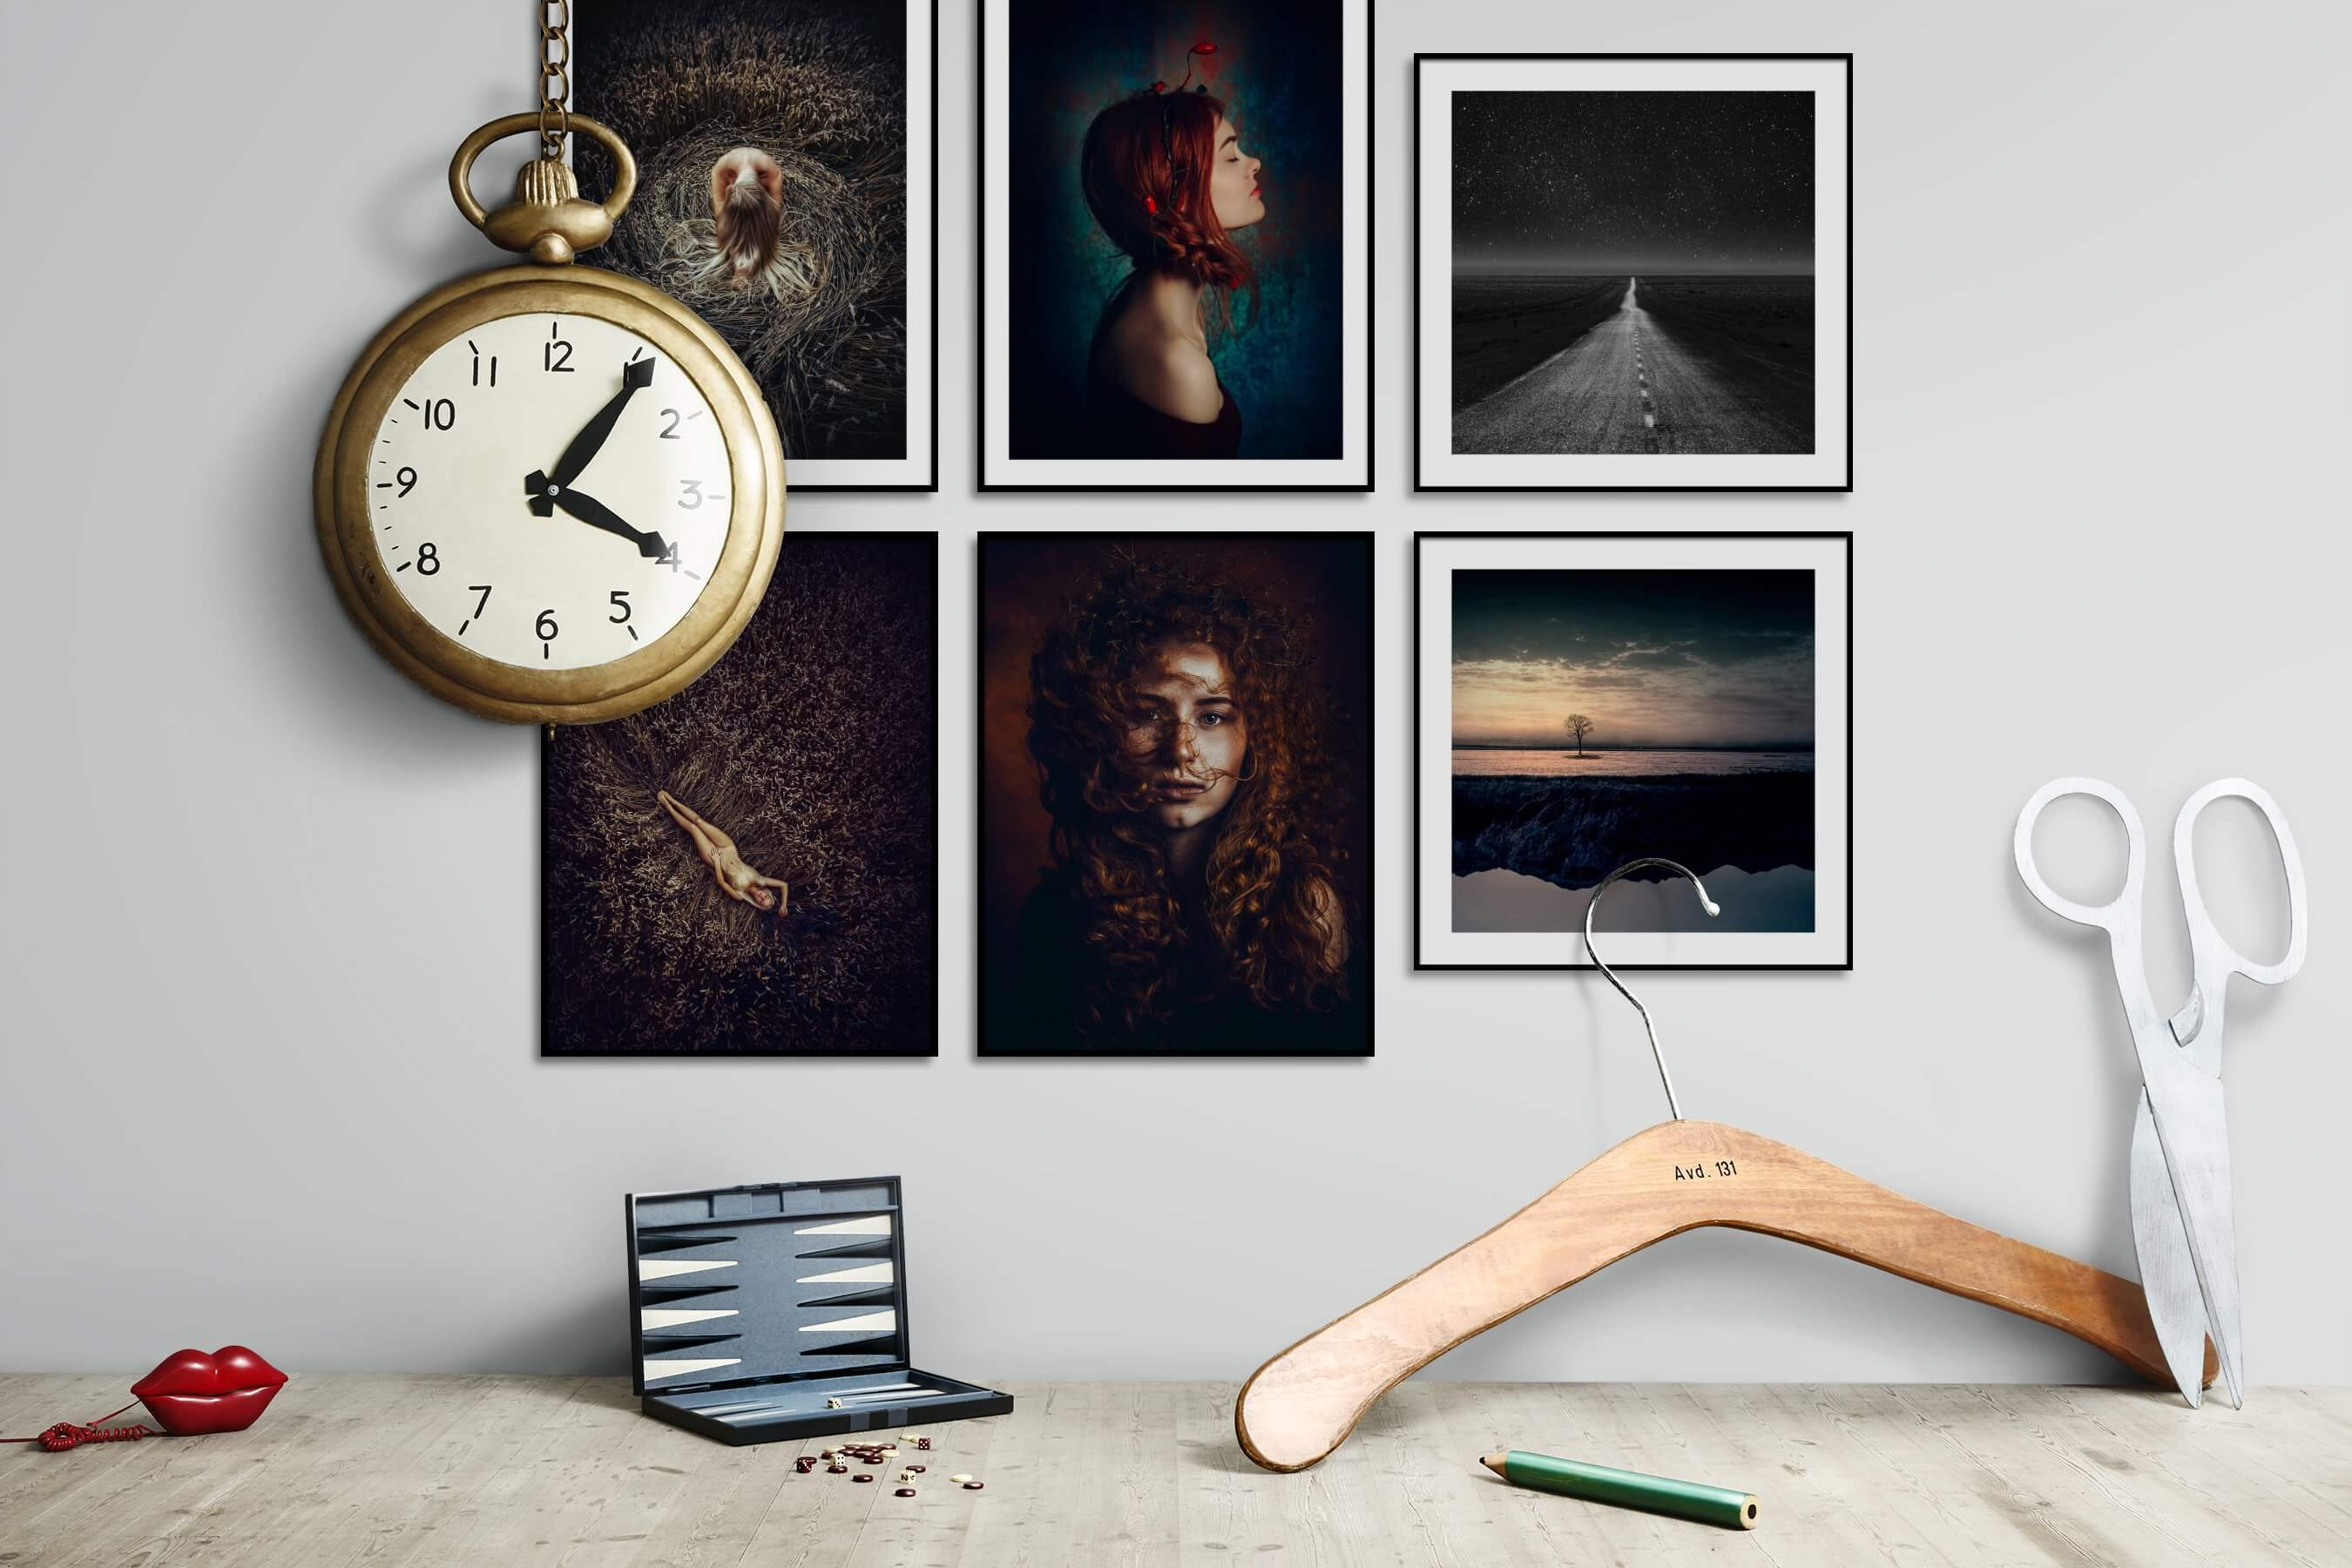 Gallery wall idea with six framed pictures arranged on a wall depicting Fashion & Beauty, Country Life, Artsy, Bold, Black & White, Mindfulness, and Nature